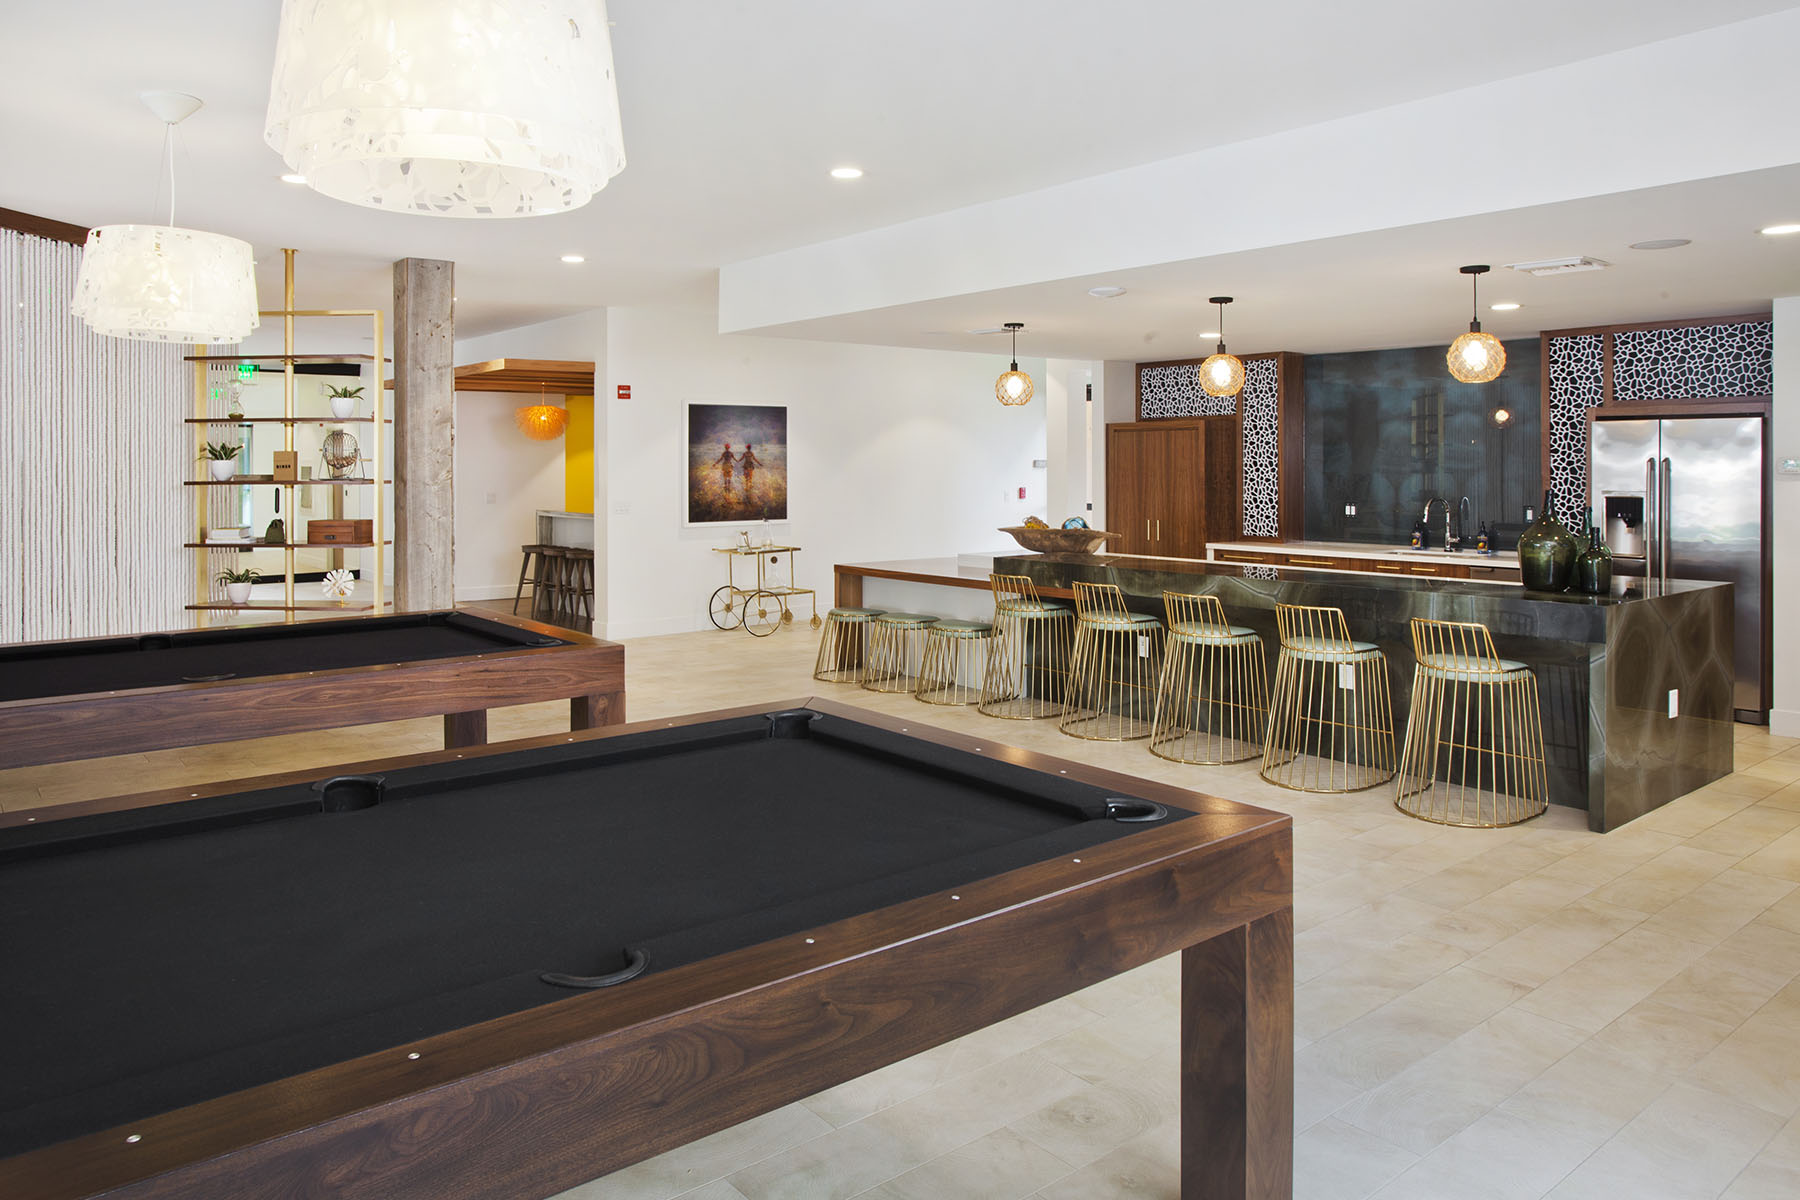 4 Design Strategies to Transform Your Property into an Experience-Driven Destination